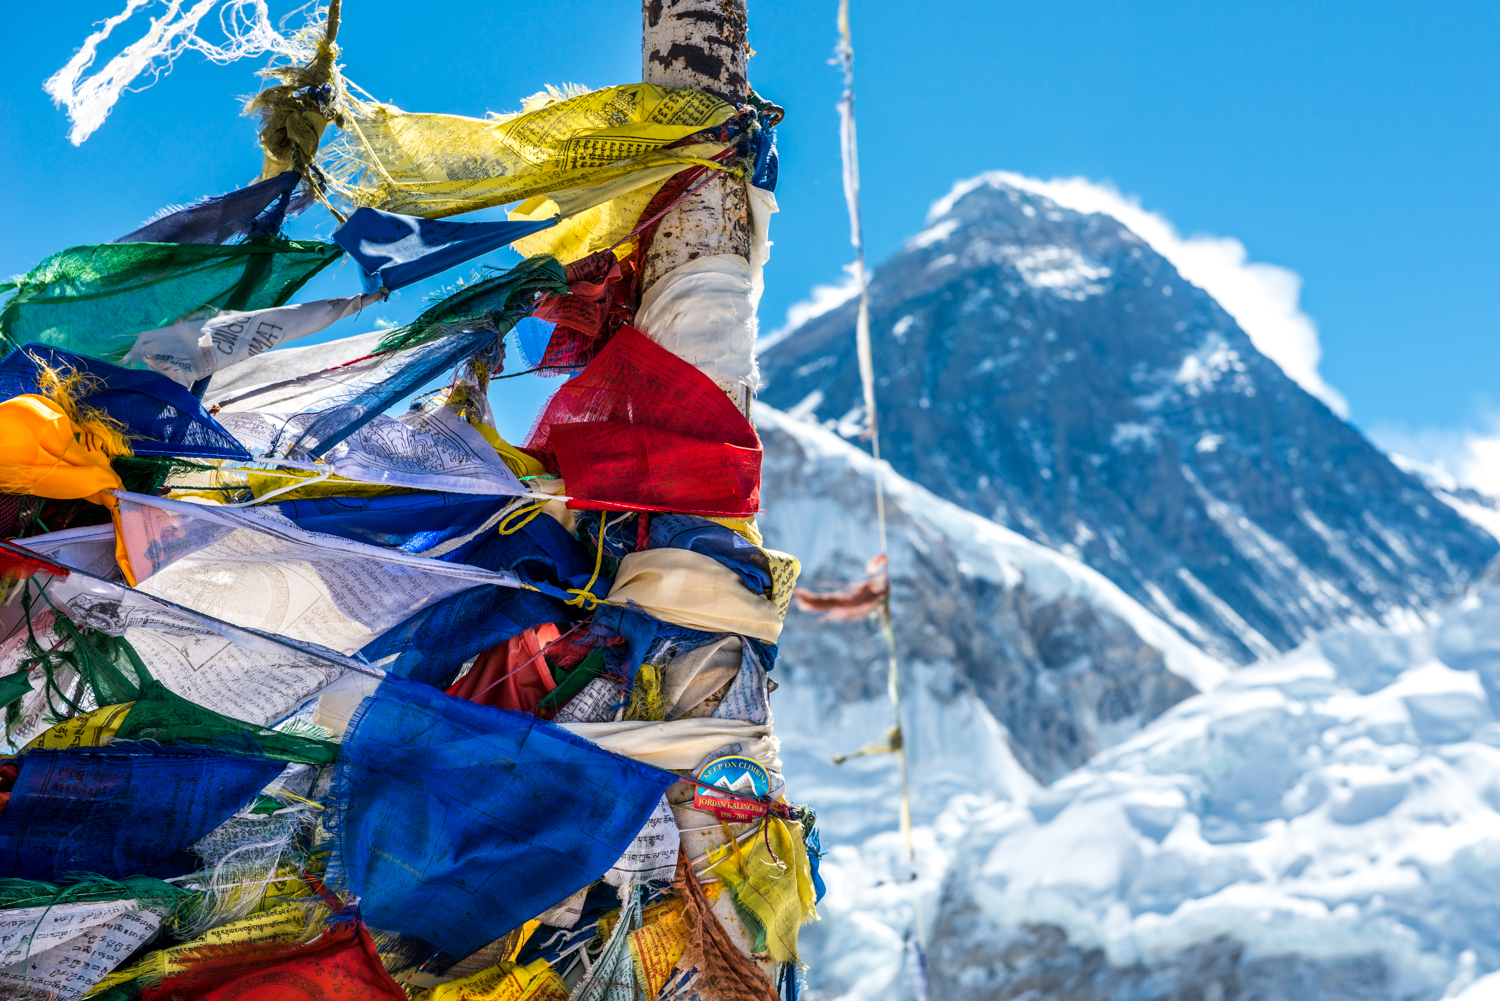 Prayer flags sway in front the of Mount Everest at the top of Kala Pattar (5545m) - Mount Everest, Nepal.